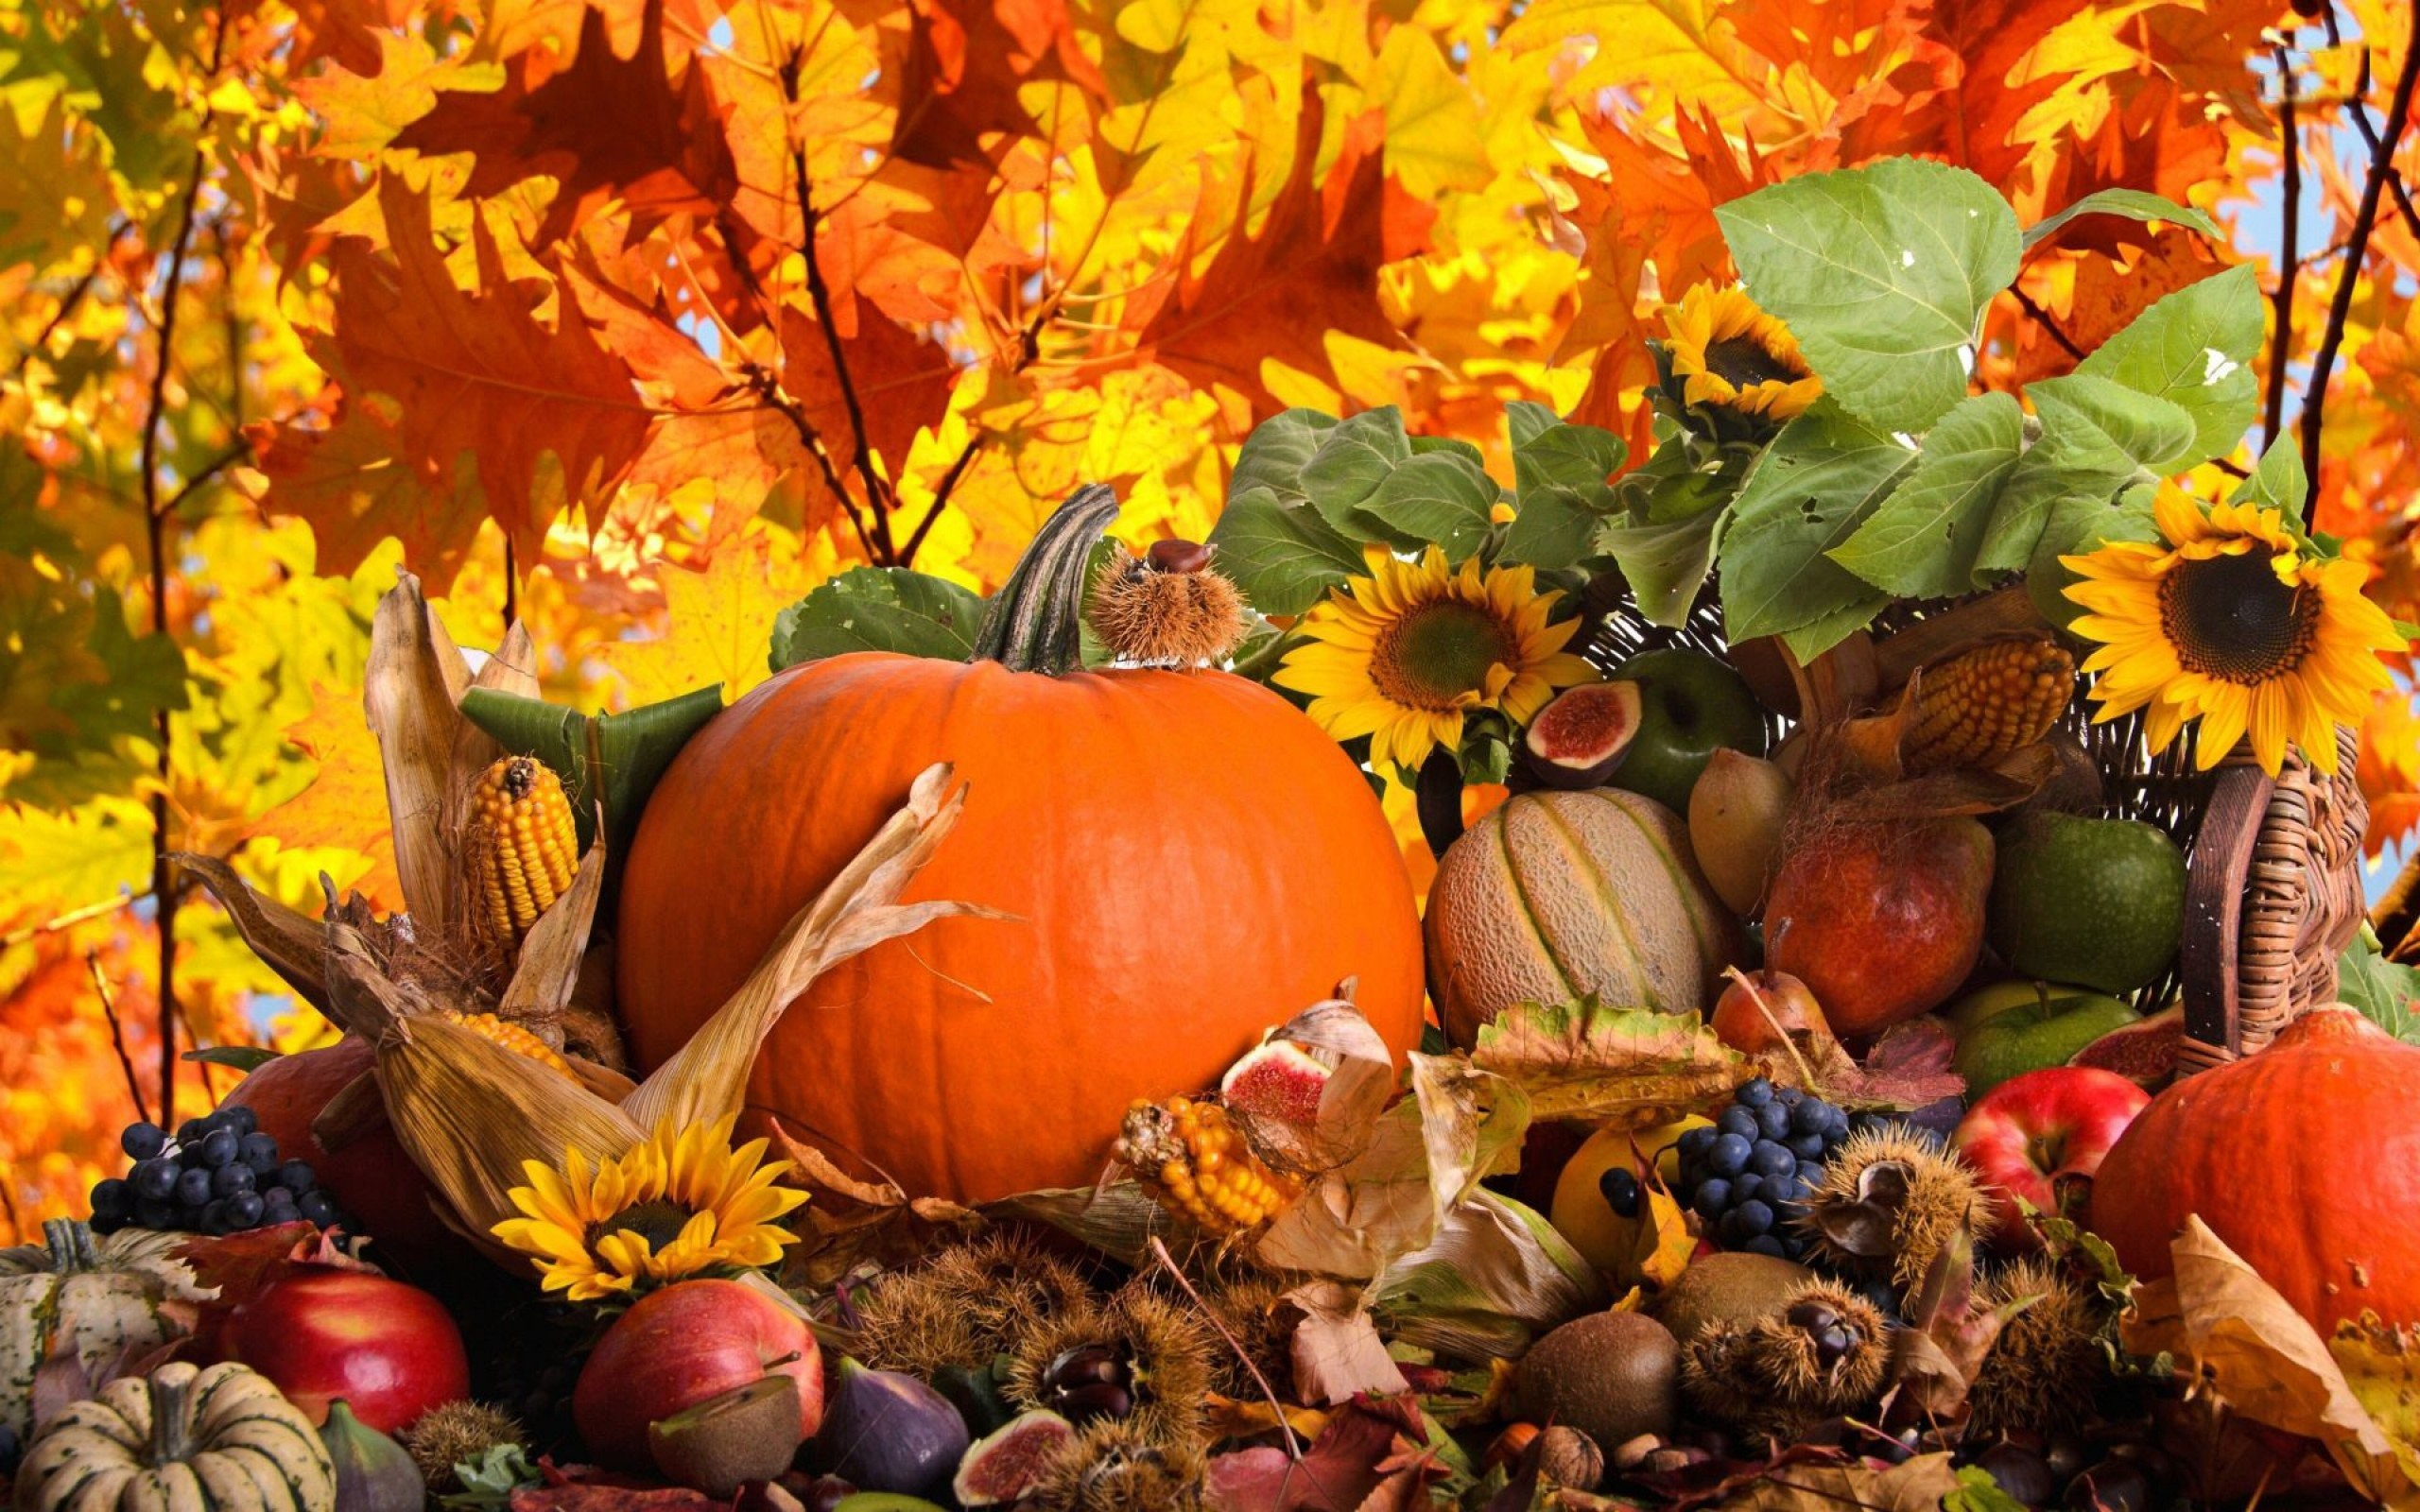 Res: 2560x1600, Top 15+ Images for Fall Leaves Thanksgiving Wallpaper | Image No: 17. File